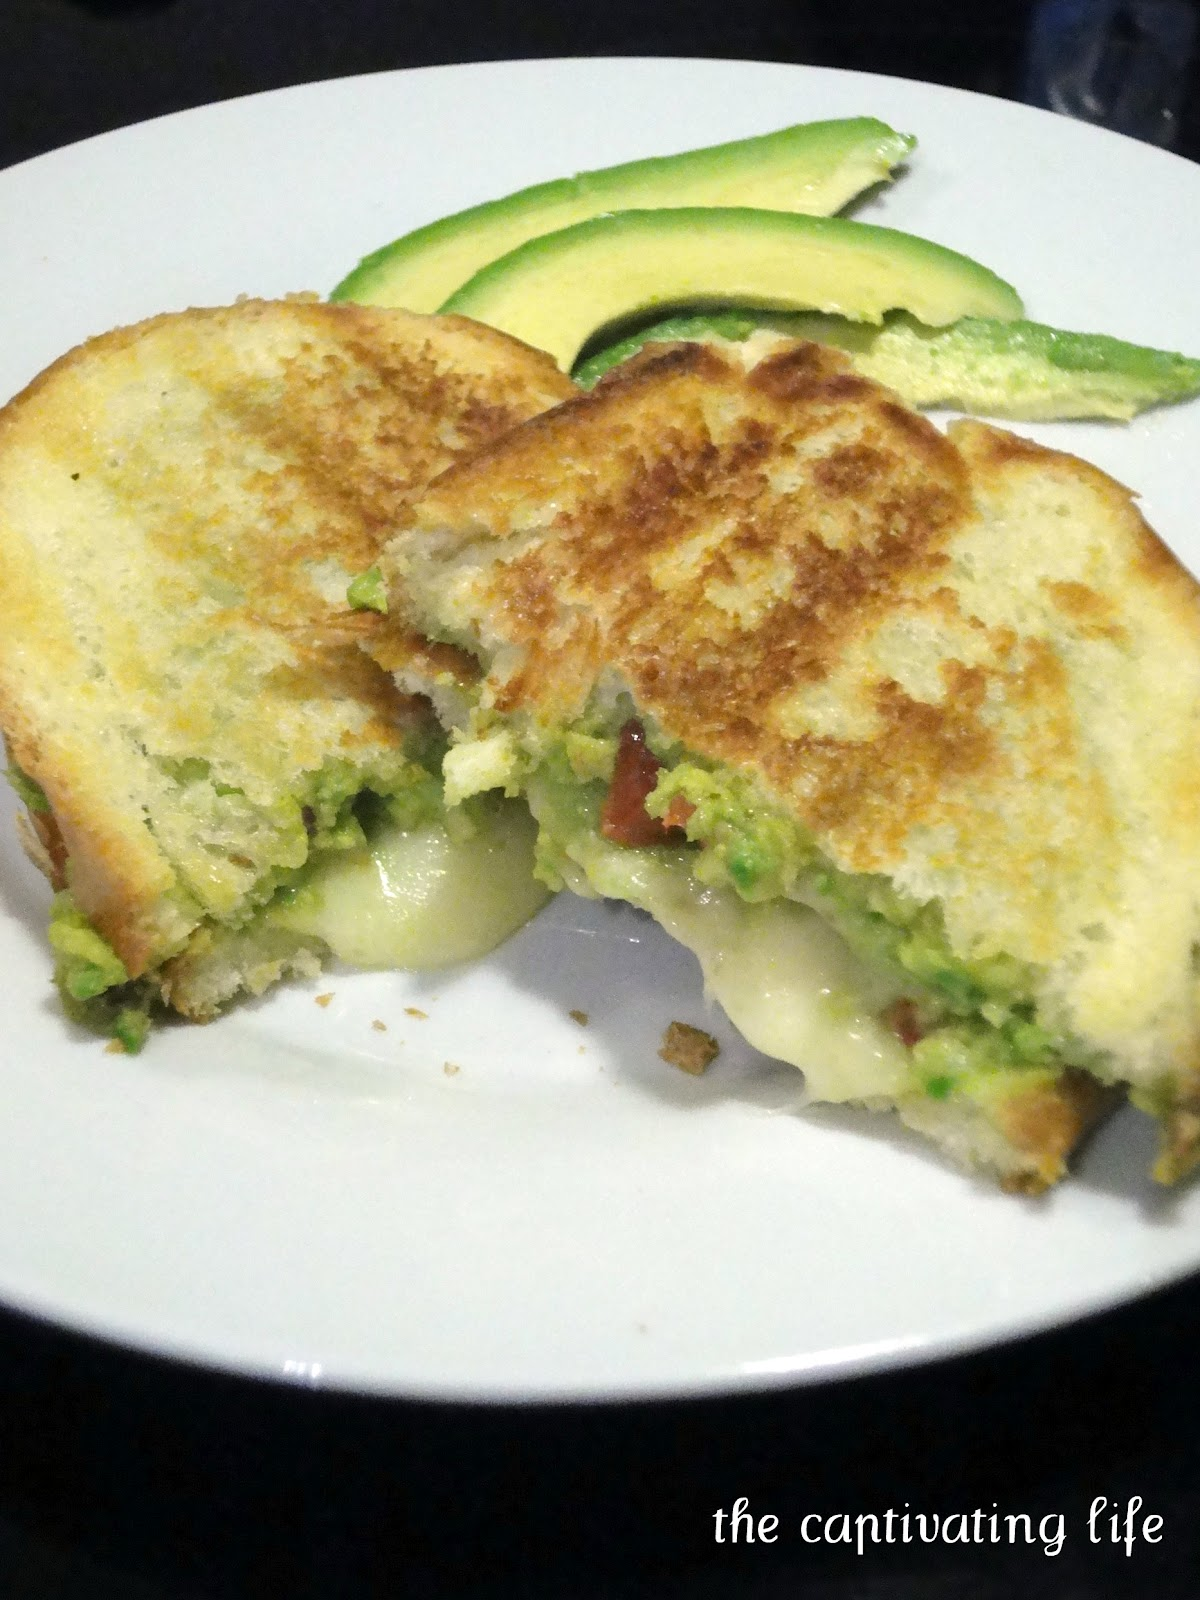 The Captivating Life: Guacamole Grilled Cheese Sandwiches